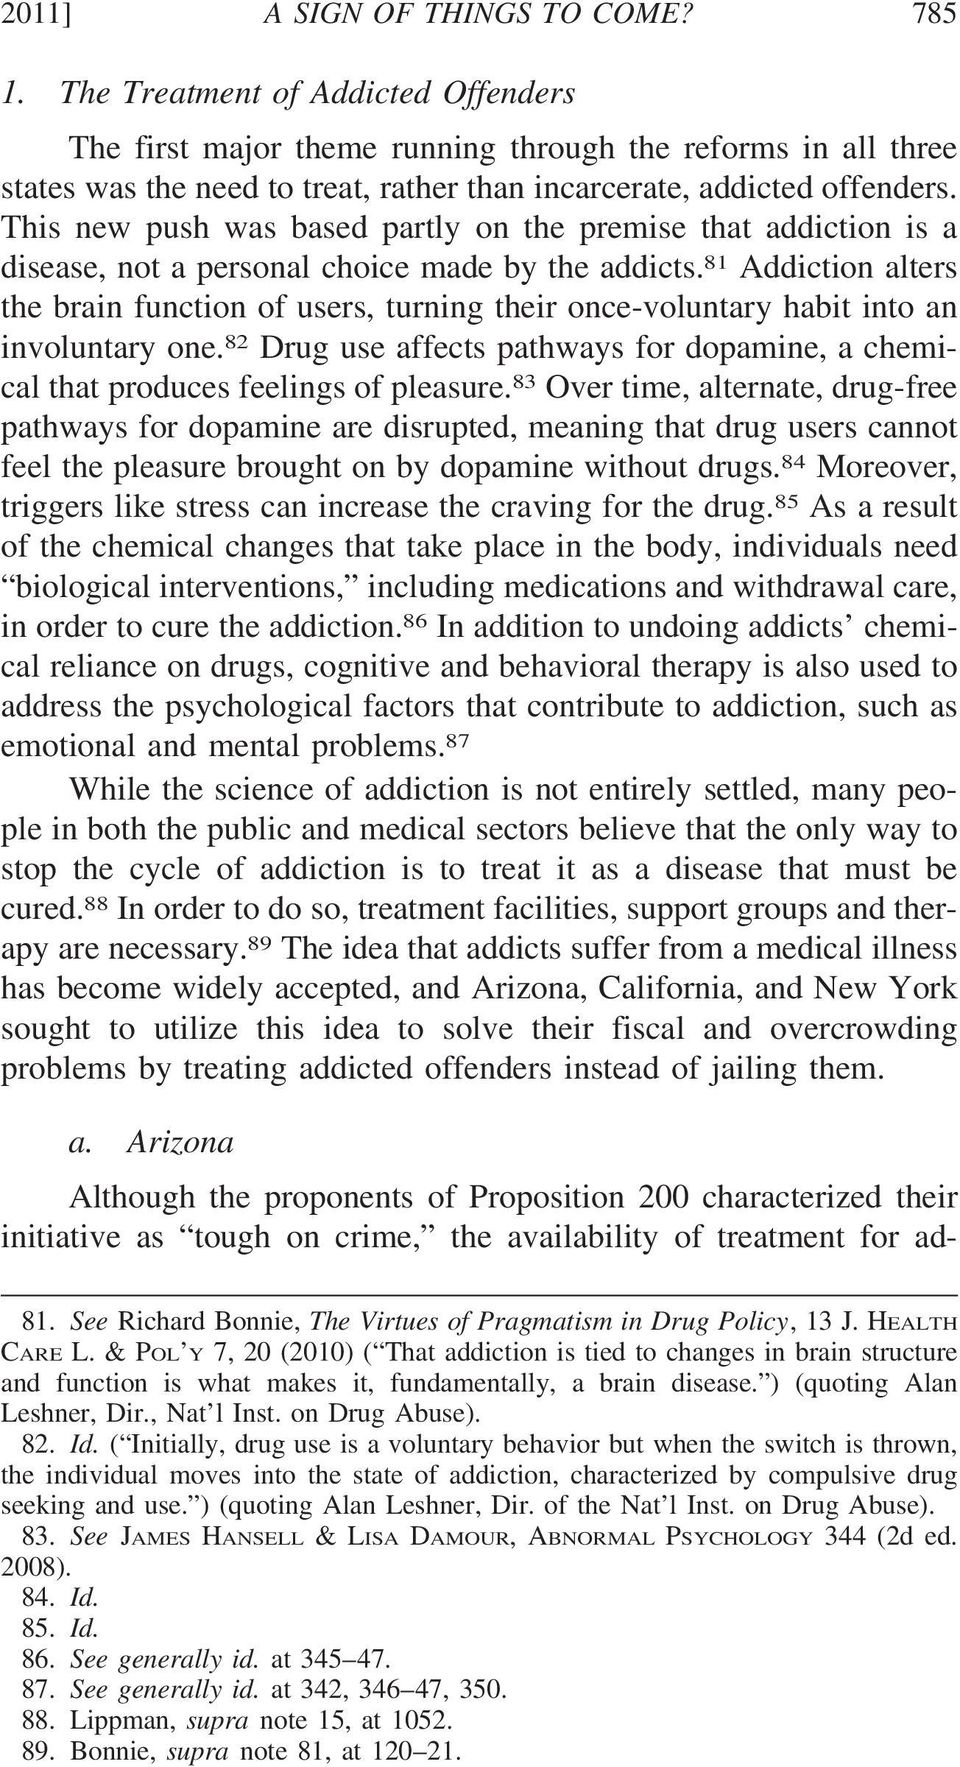 This new push was based partly on the premise that addiction is a disease, not a personal choice made by the addicts.